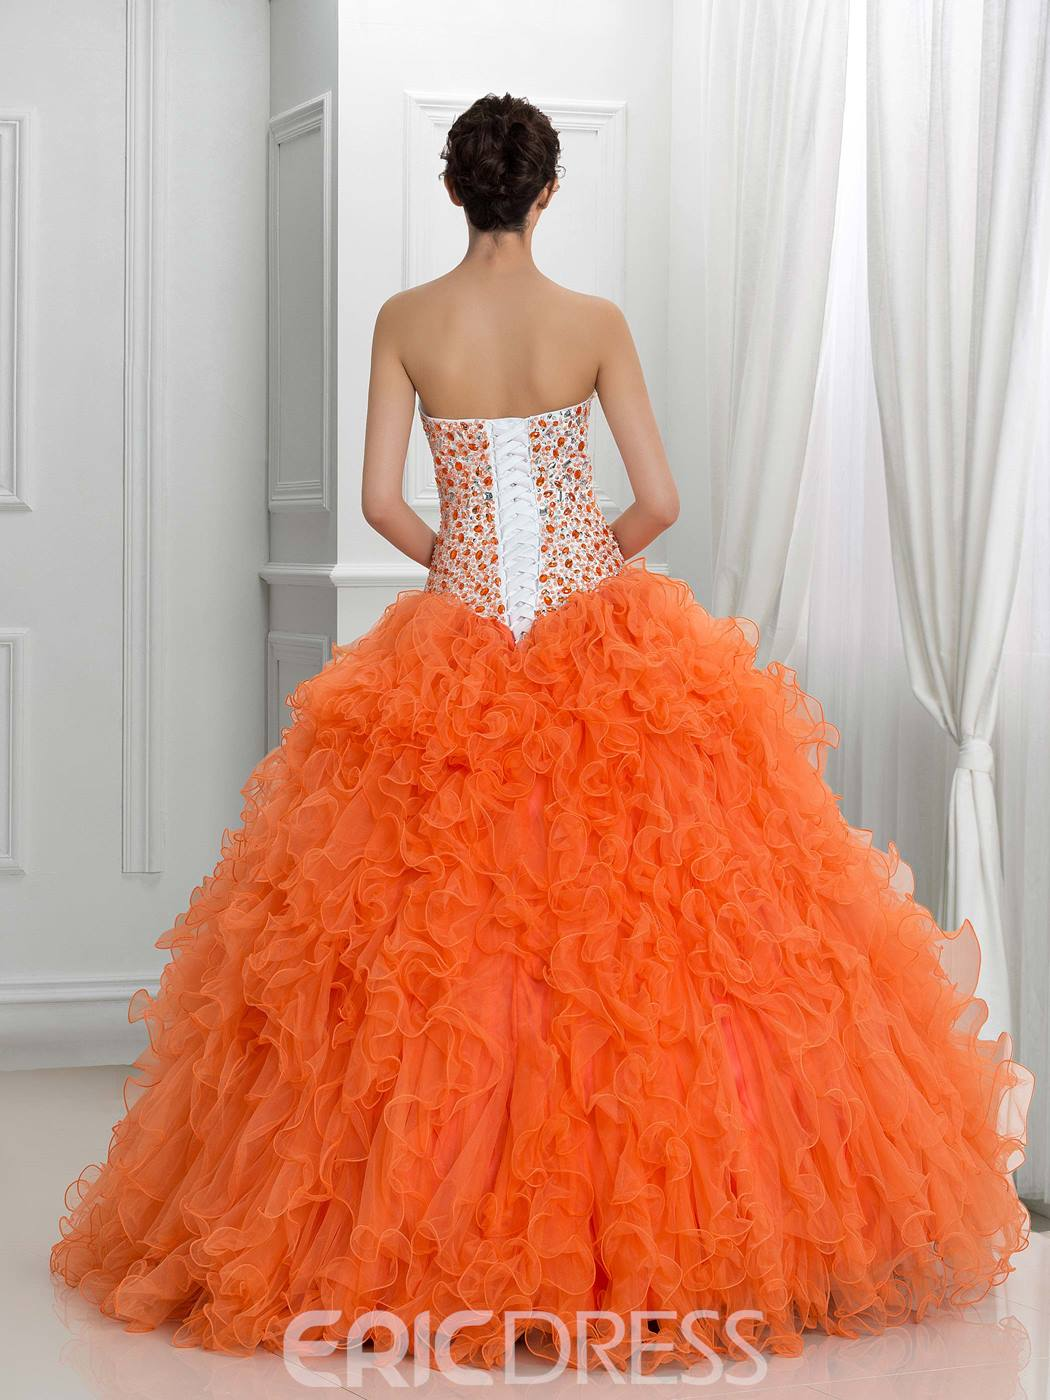 Ericdress Sweetheart Crystal Ruffles Ball Gown Quinceanera Dress With Jacket/Shawl